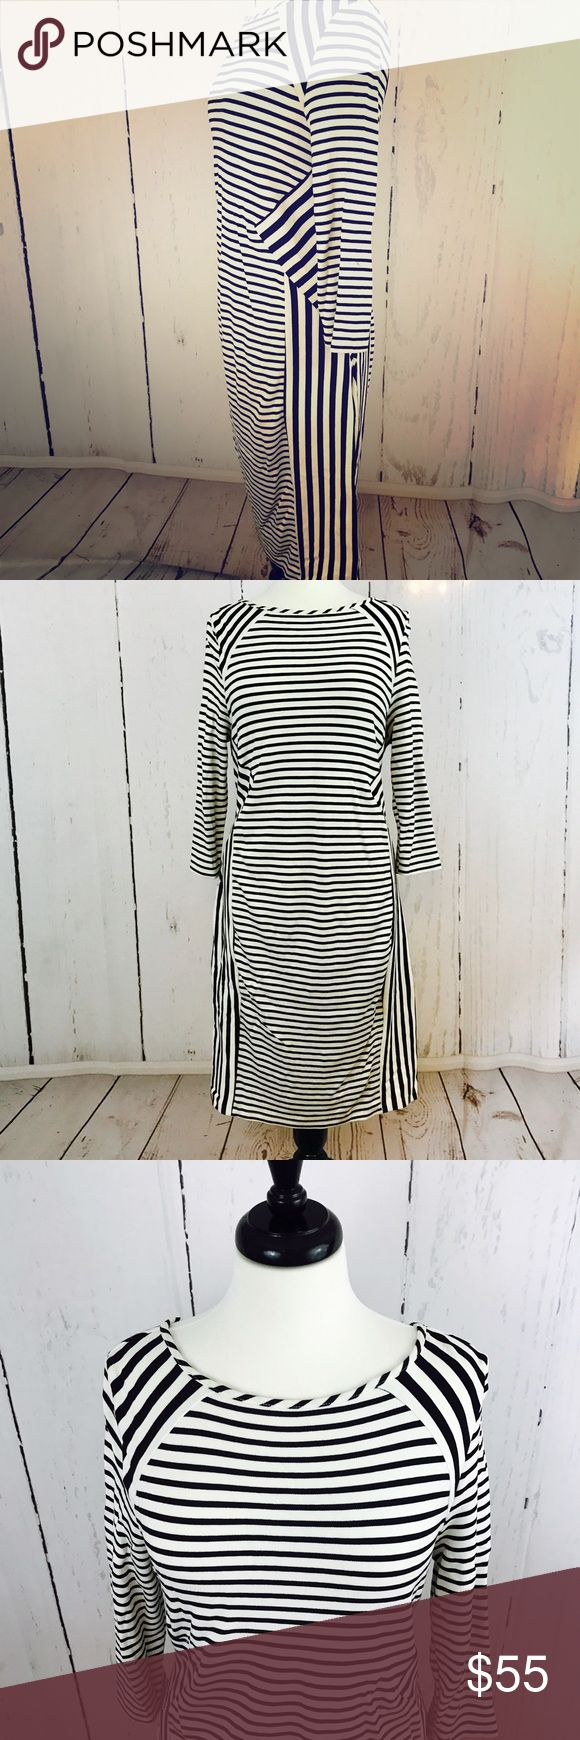 Best 20 striped maternity dresses ideas on pinterest summer adorable striped maternity dress ombrellifo Gallery